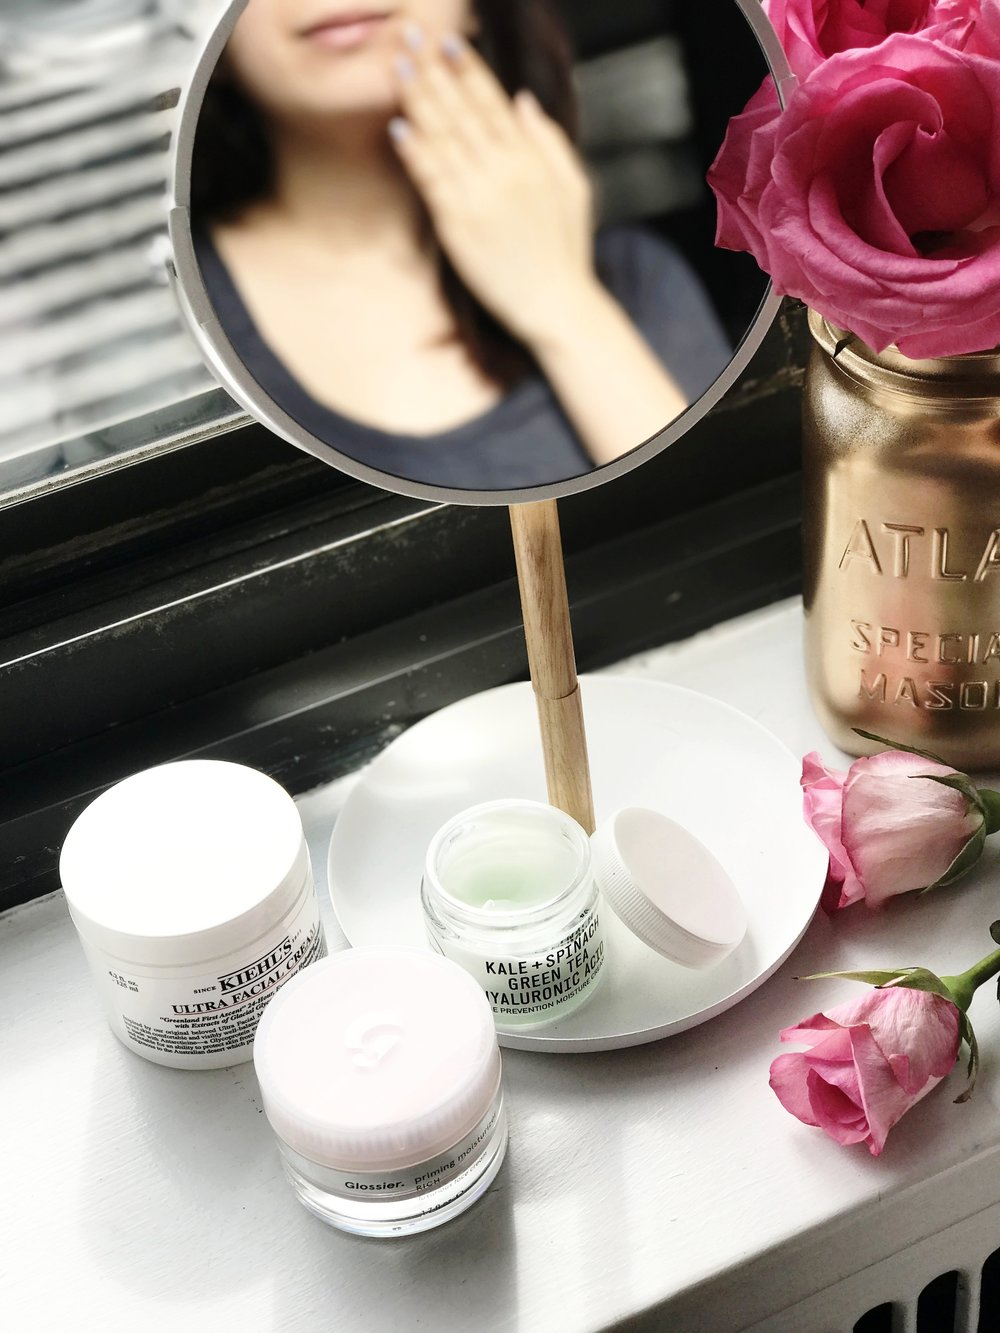 It is crucial to have a good moisturizer in your daily beauty routine.